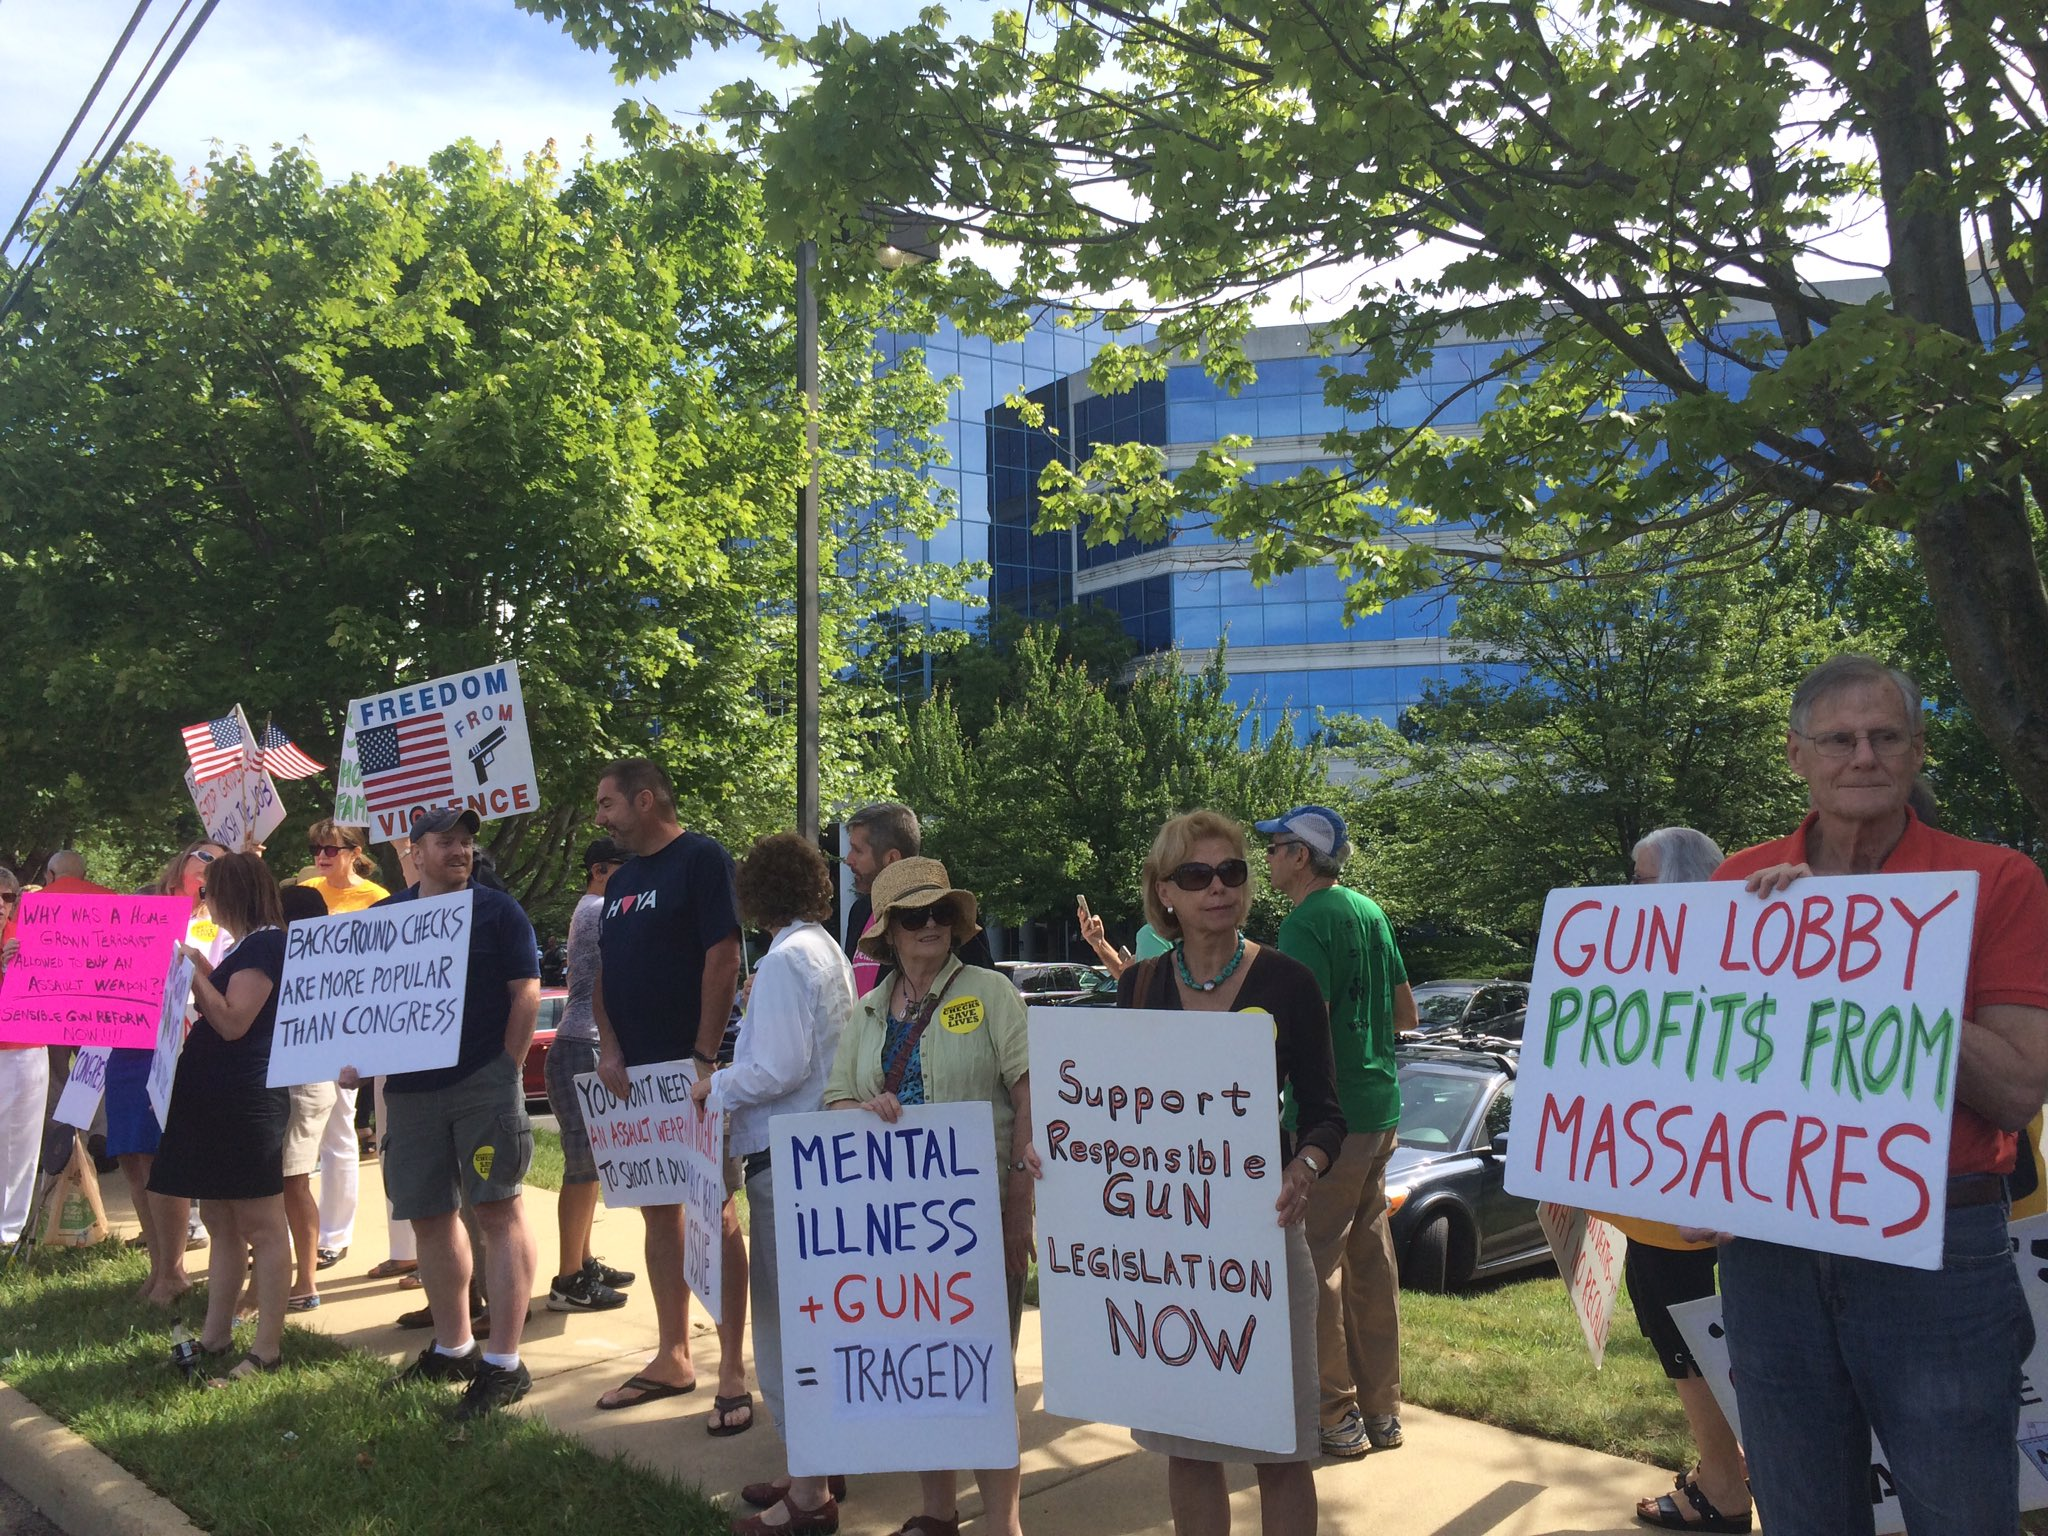 Protesters rally at NRA headquarters, call for stricter gun control